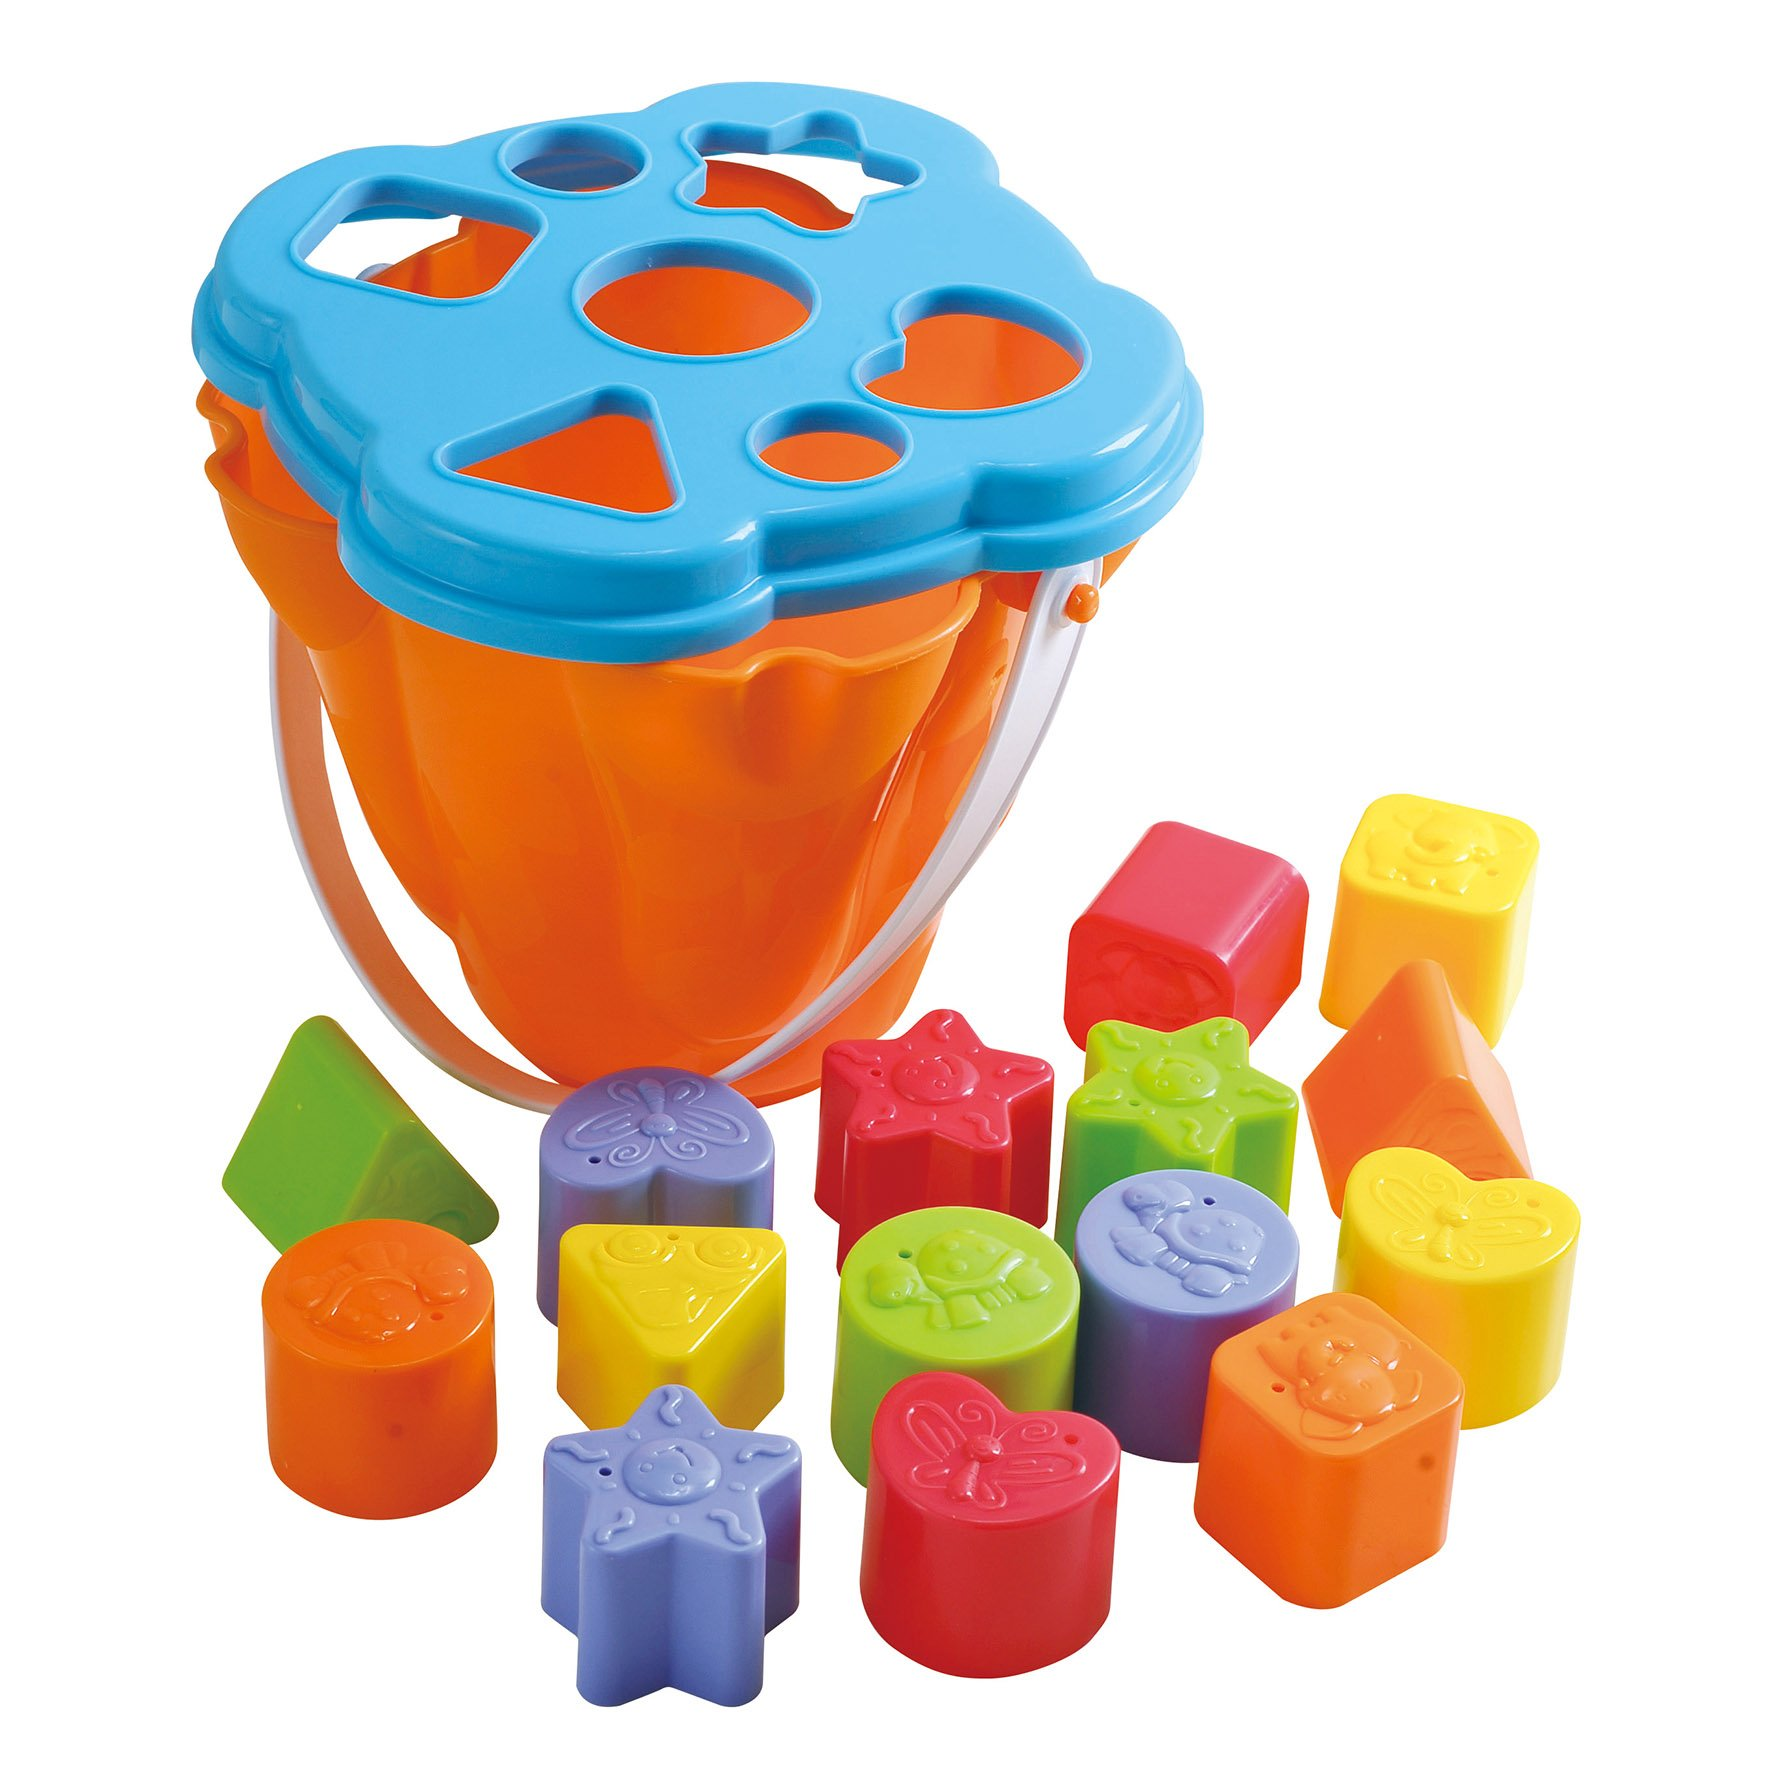 PlayGo kids Activity Centre Shape Sorting Toys Eco-Friendly & Non-Toxic Toy | Early Childhood Development Toys for Fine Motor Skills